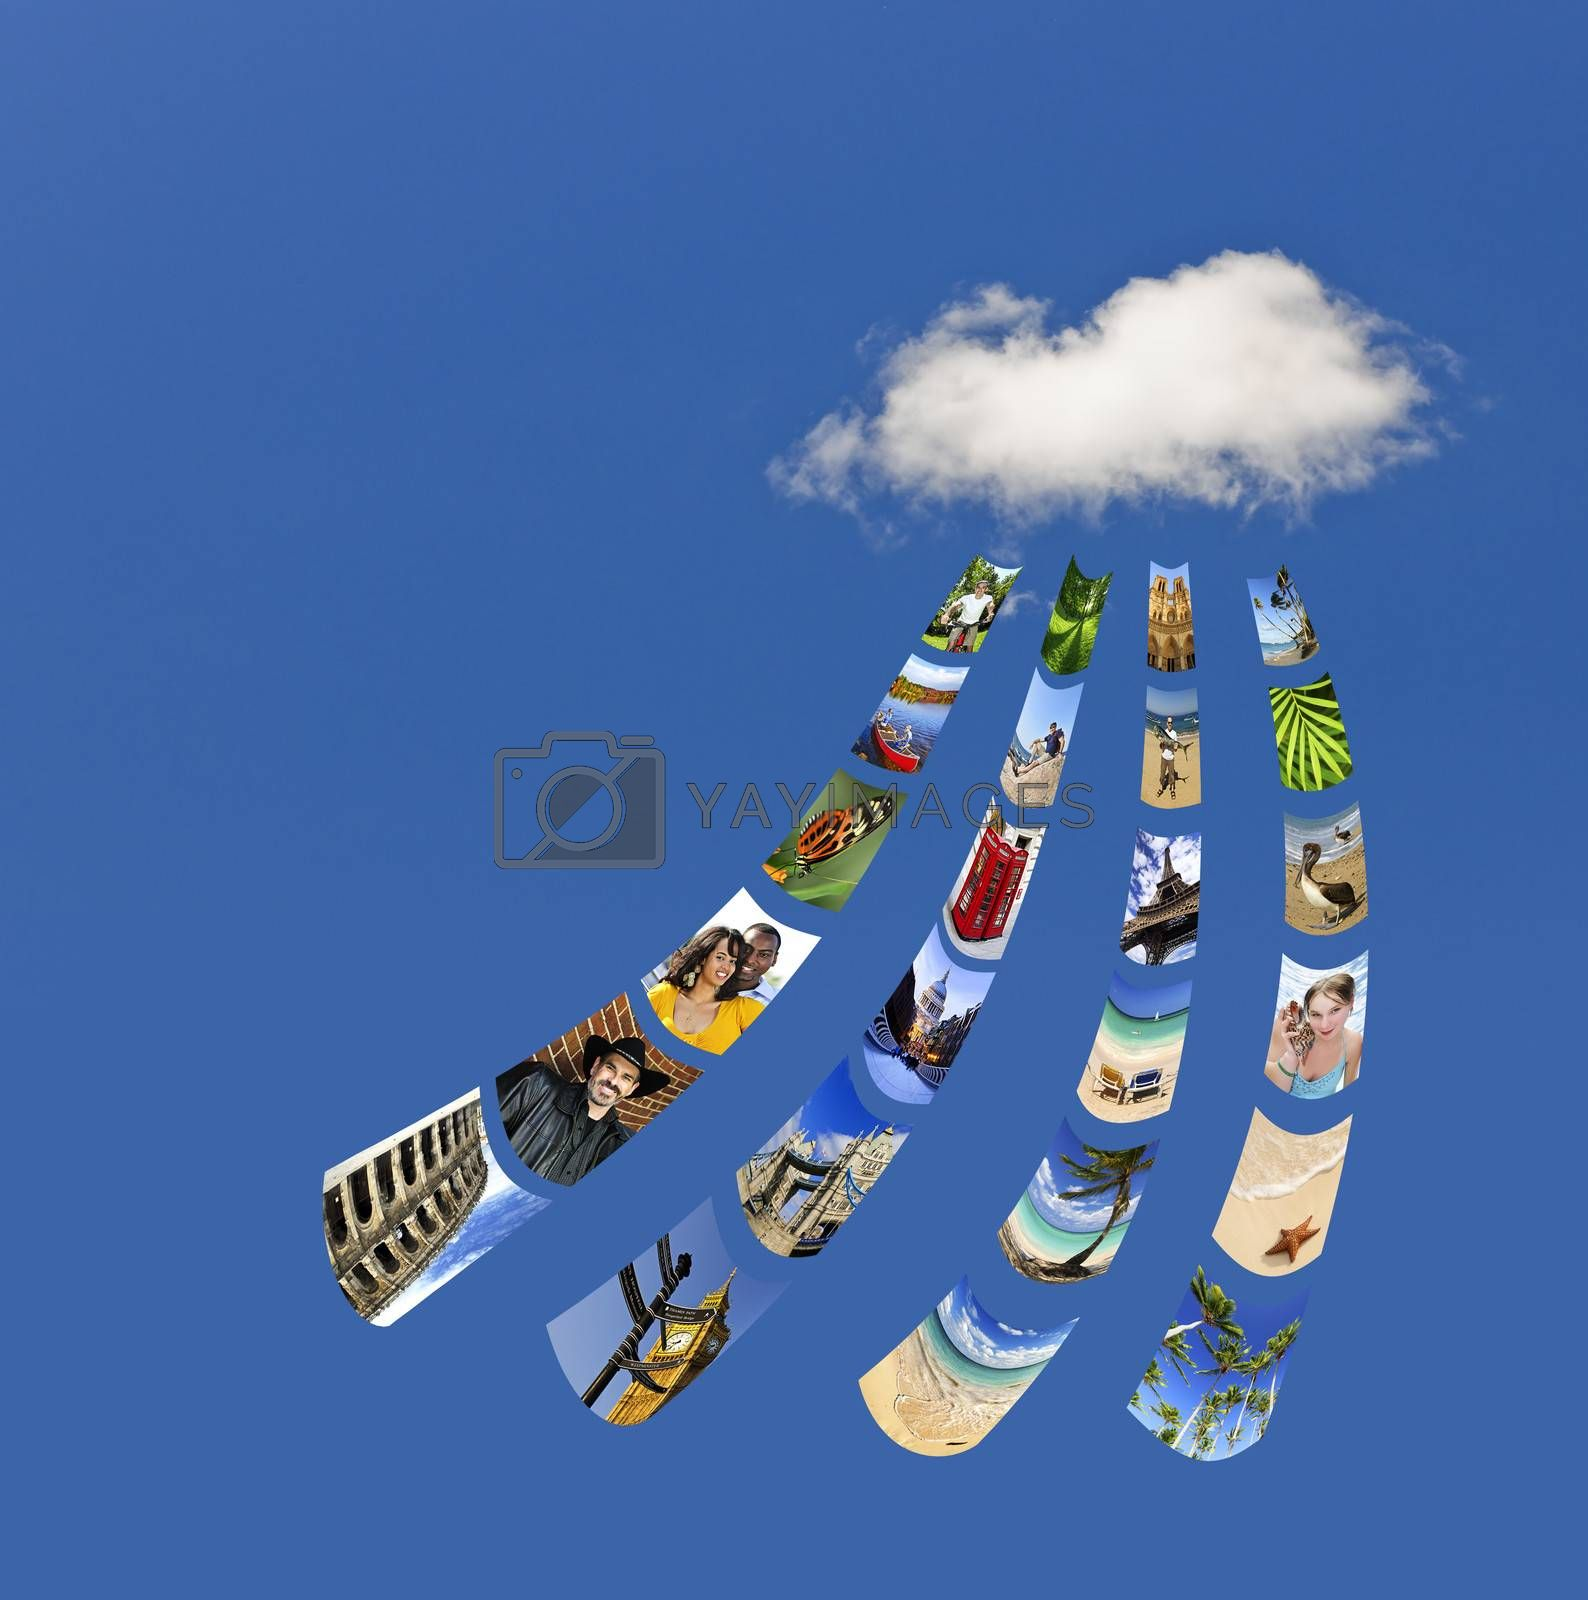 Storing photos on cloud by elenathewise